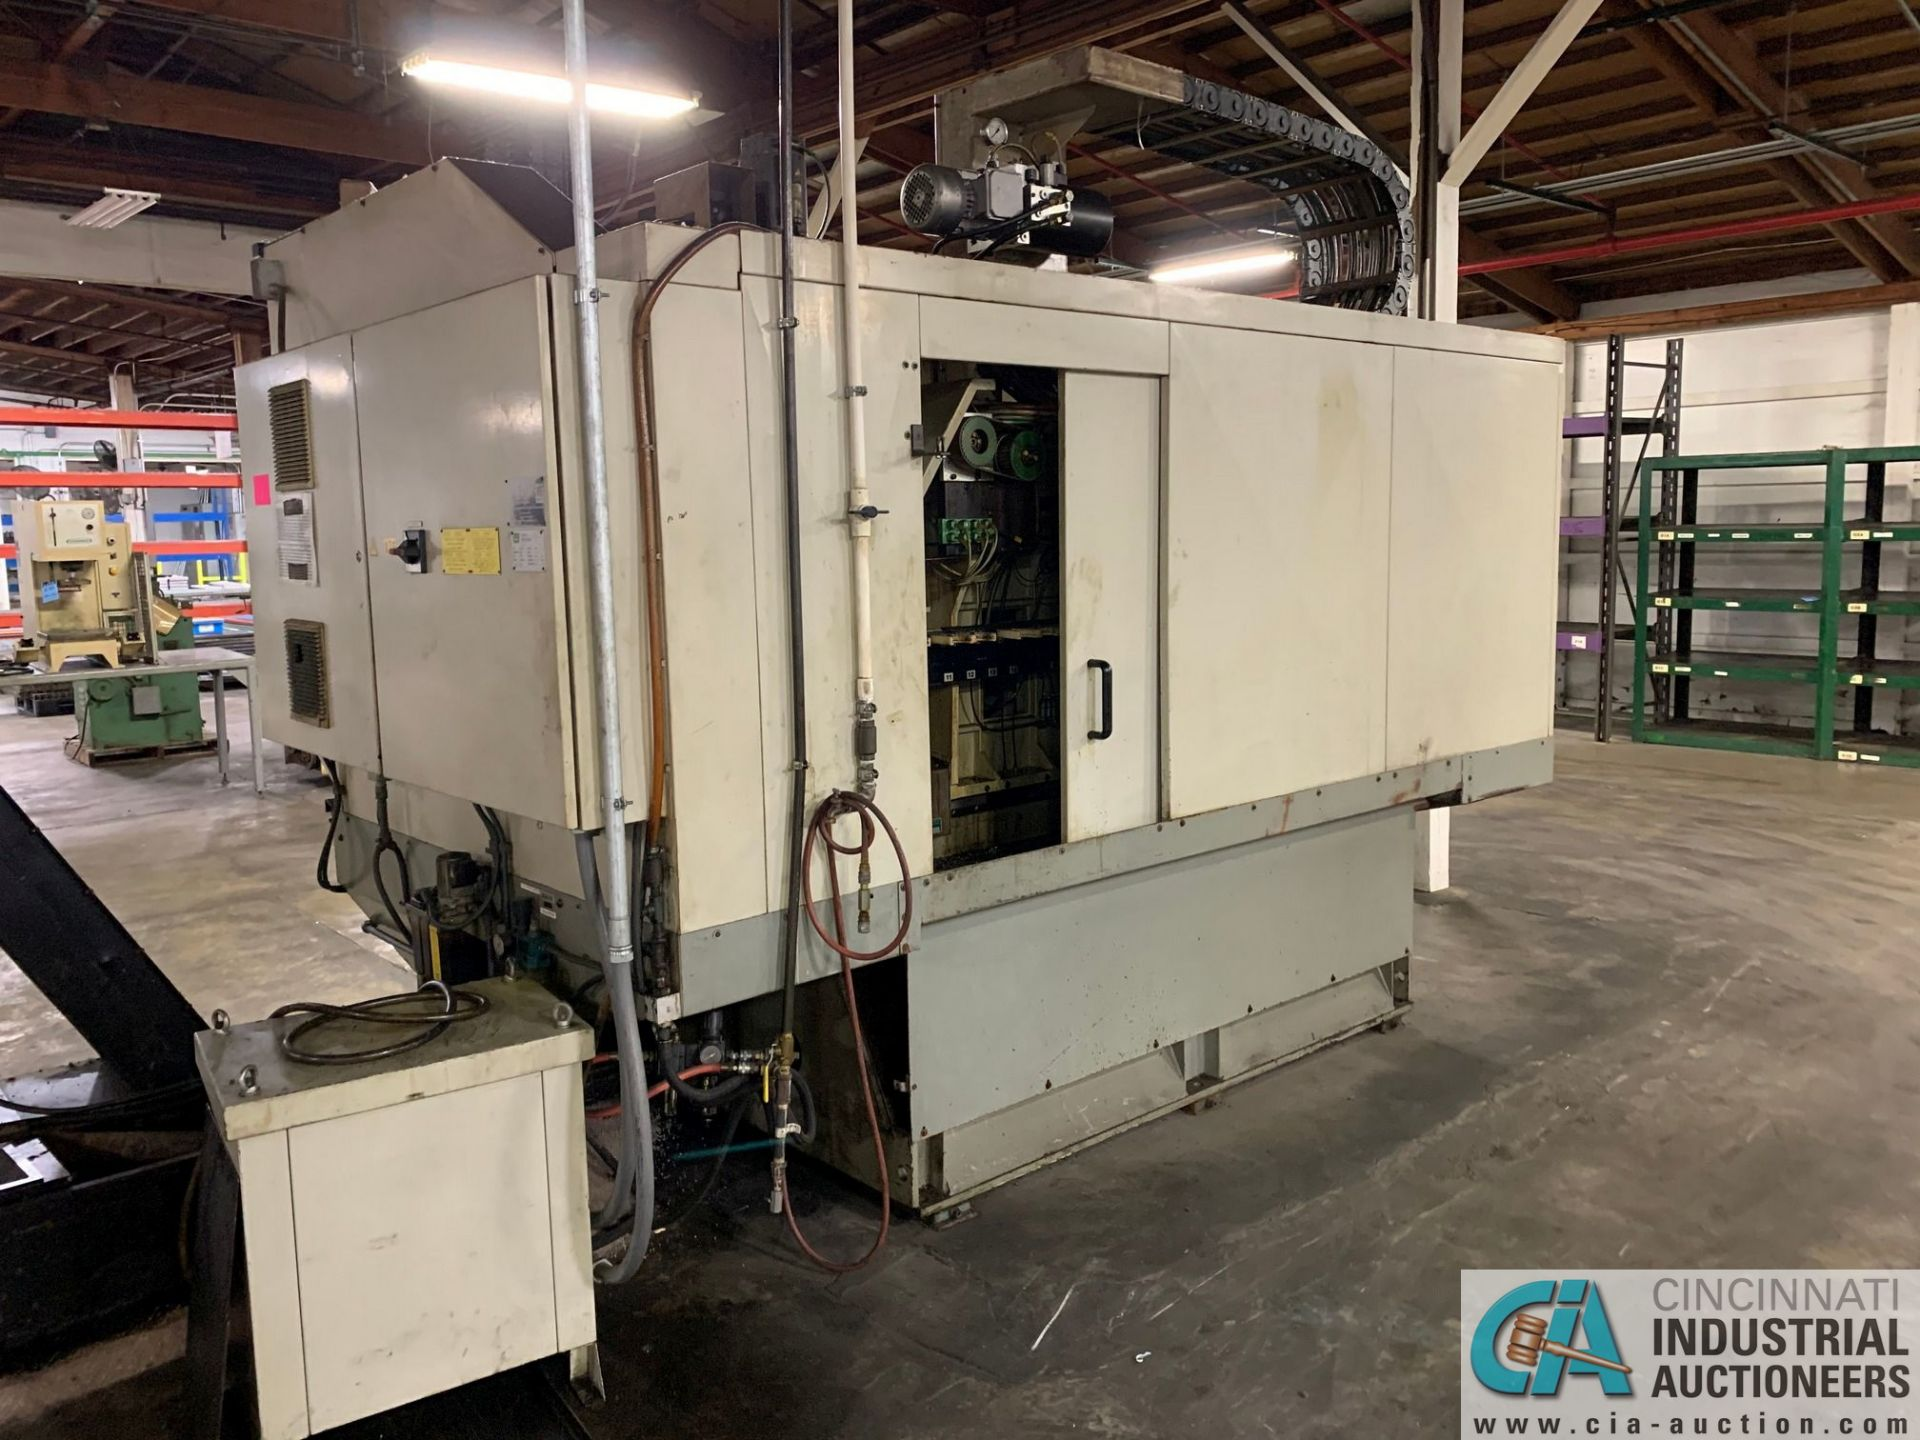 MONARCH UNISIGN TYPE UNIVERS 4 ZONALL 4 CNC VERTICAL MACHINING CENTER; S/N 99Z403, NO. 4293, - Image 6 of 13